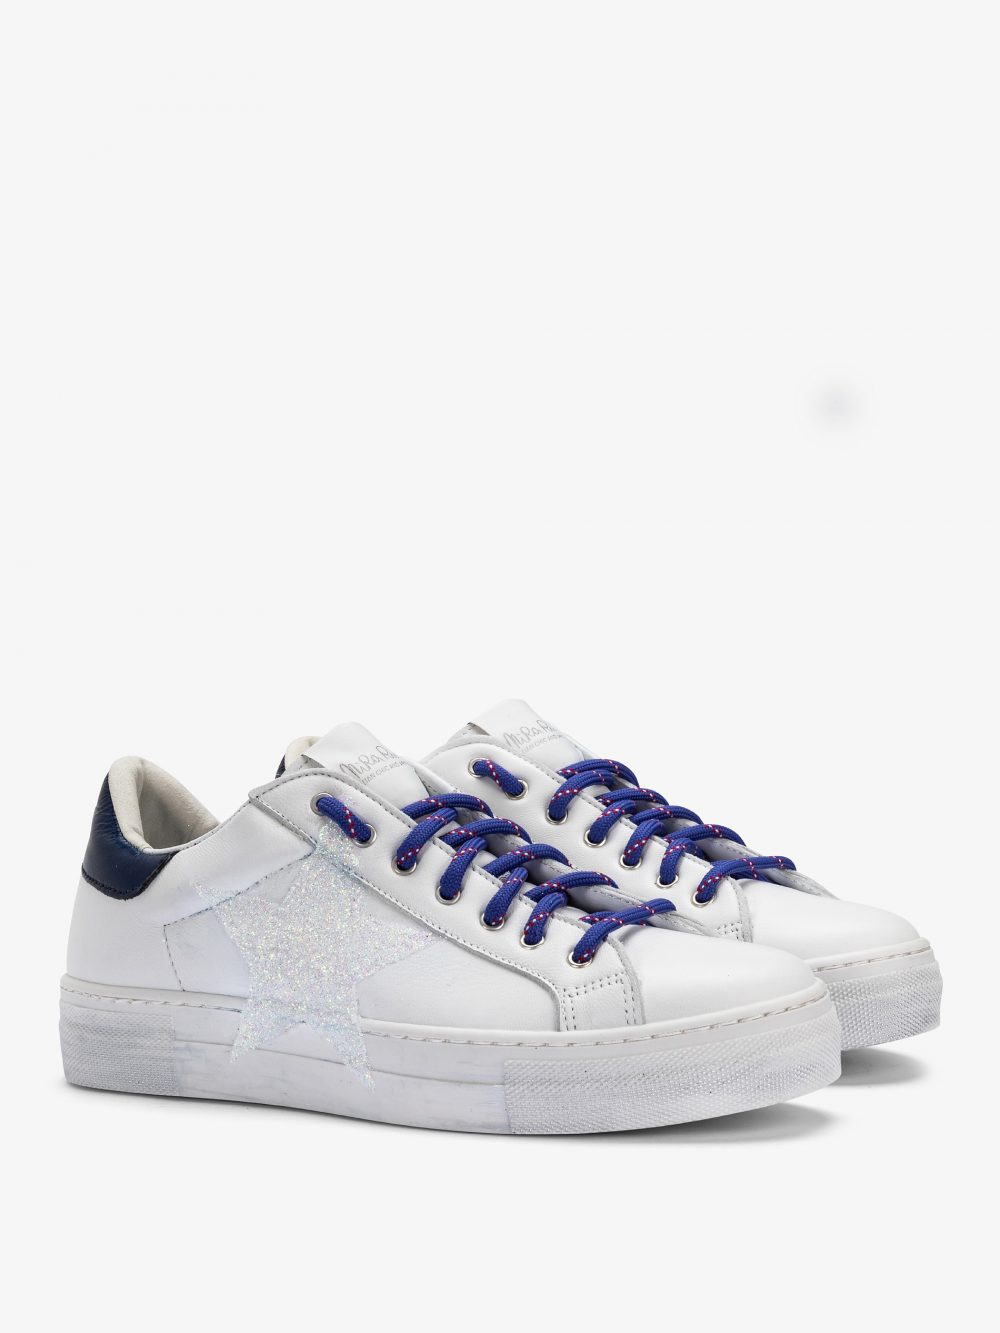 sneakers-in-pelle-donna-martini-vintage-blue-lips-stella